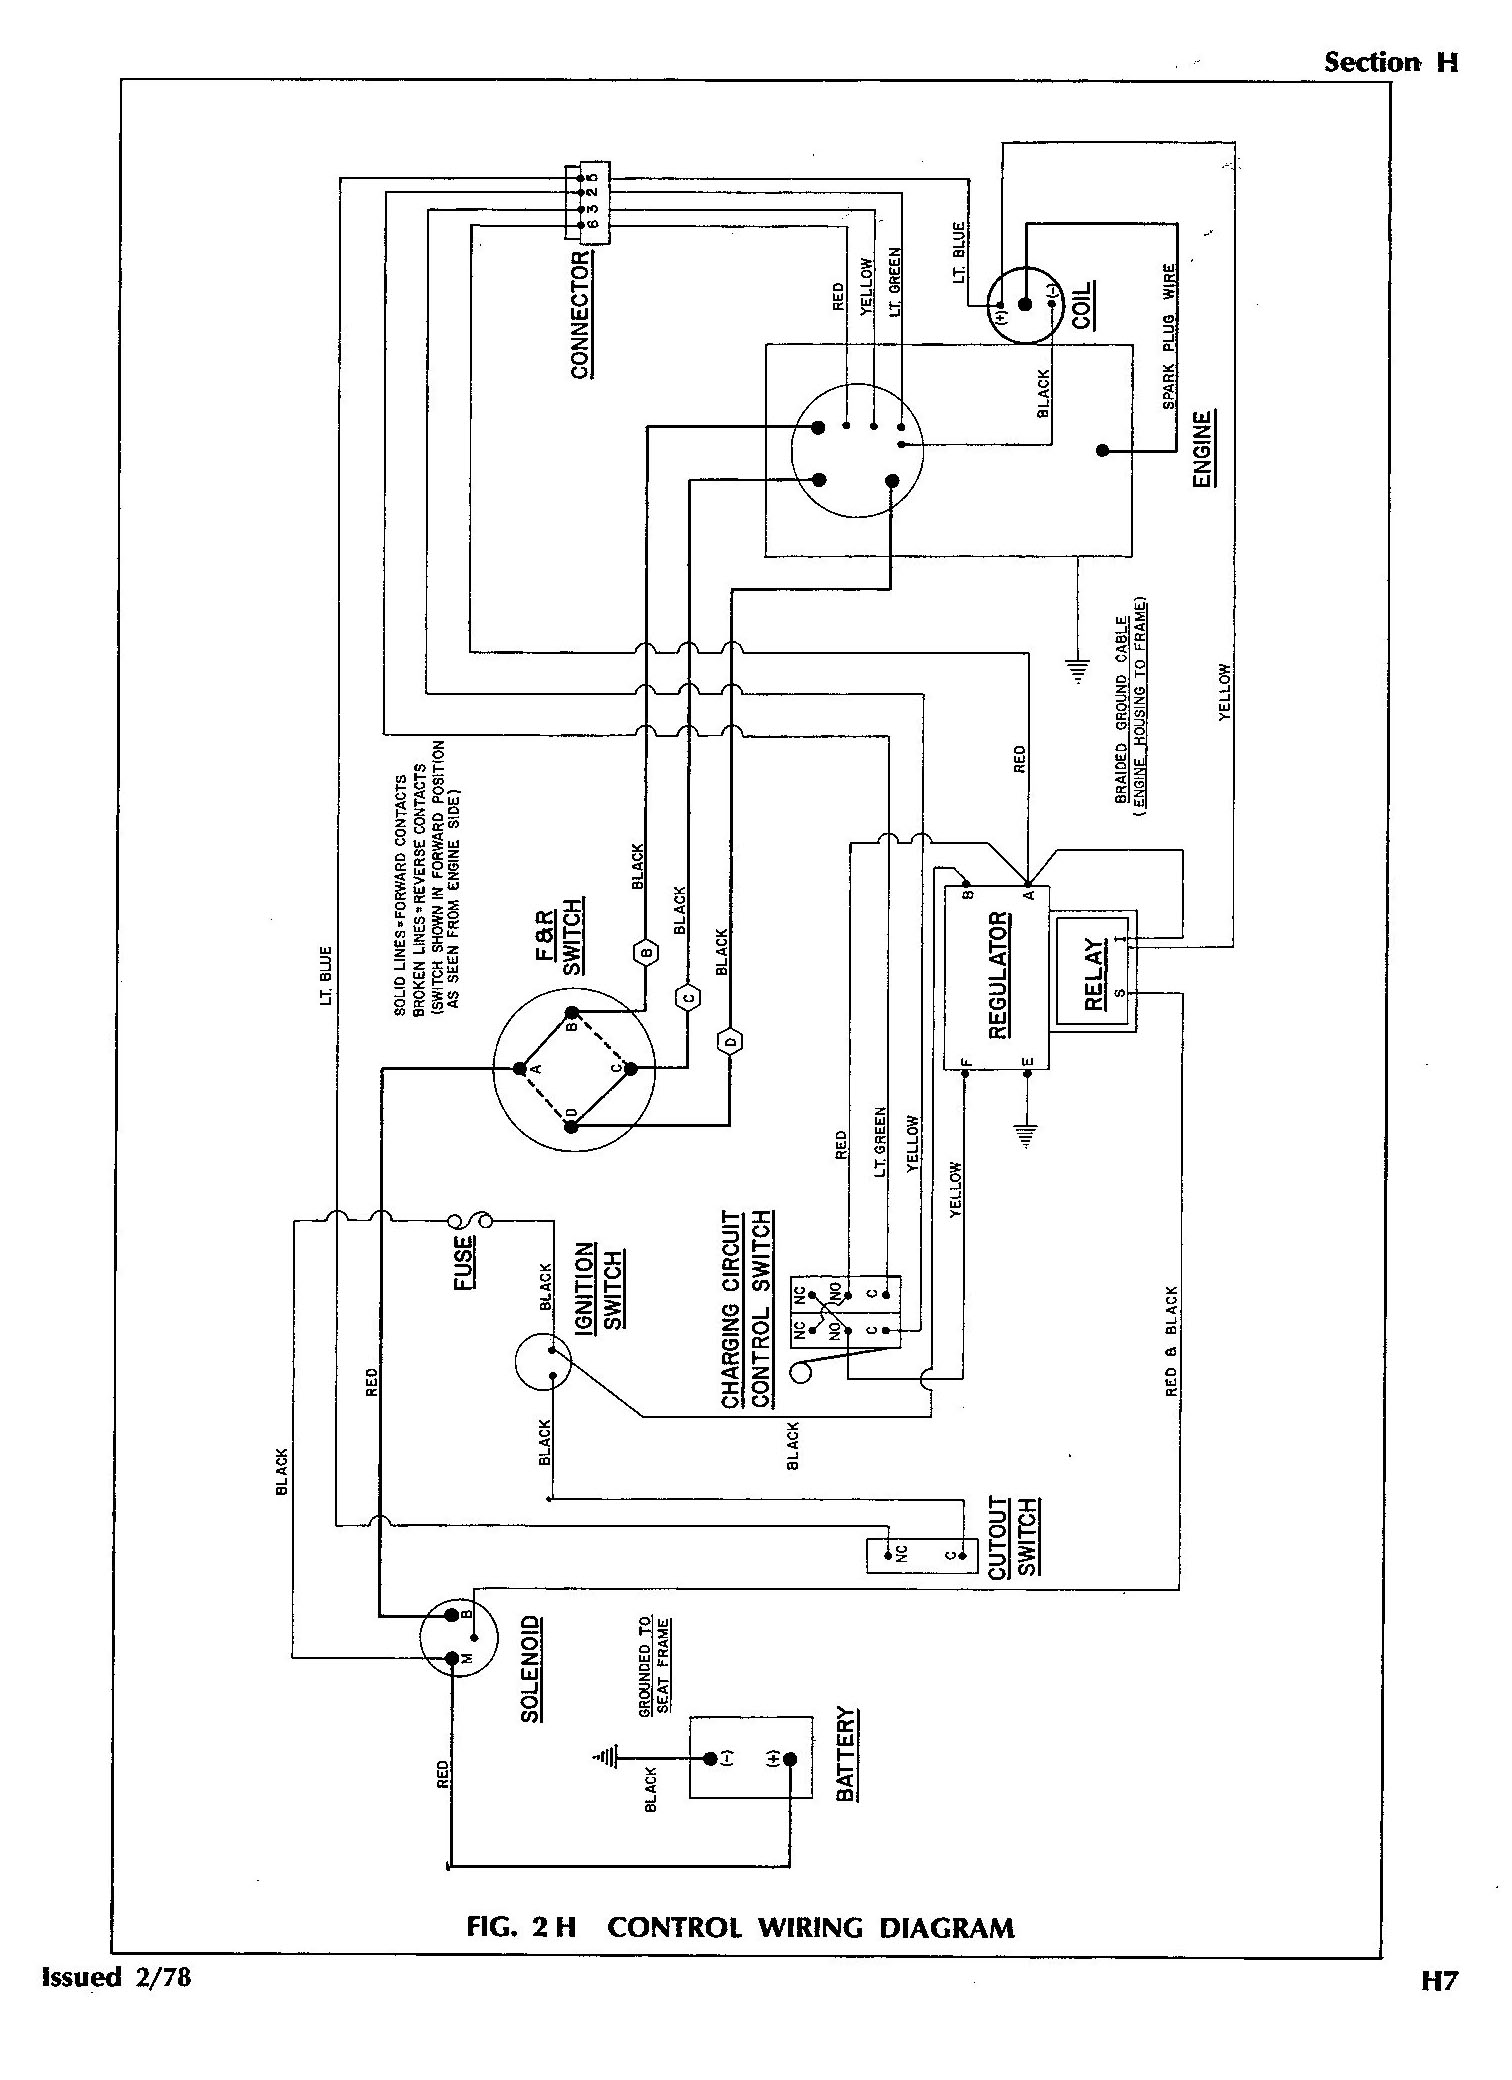 Daewoo 2 0 Photo 17 as well 1991 Ford F 150 Inertia Switch Location together with 2000 Acura Tl Cooling Fan Diagram in addition 2001 Chevy Silverado Ebcm together with Gallery. on 2005 gmc sierra ignition wiring diagram